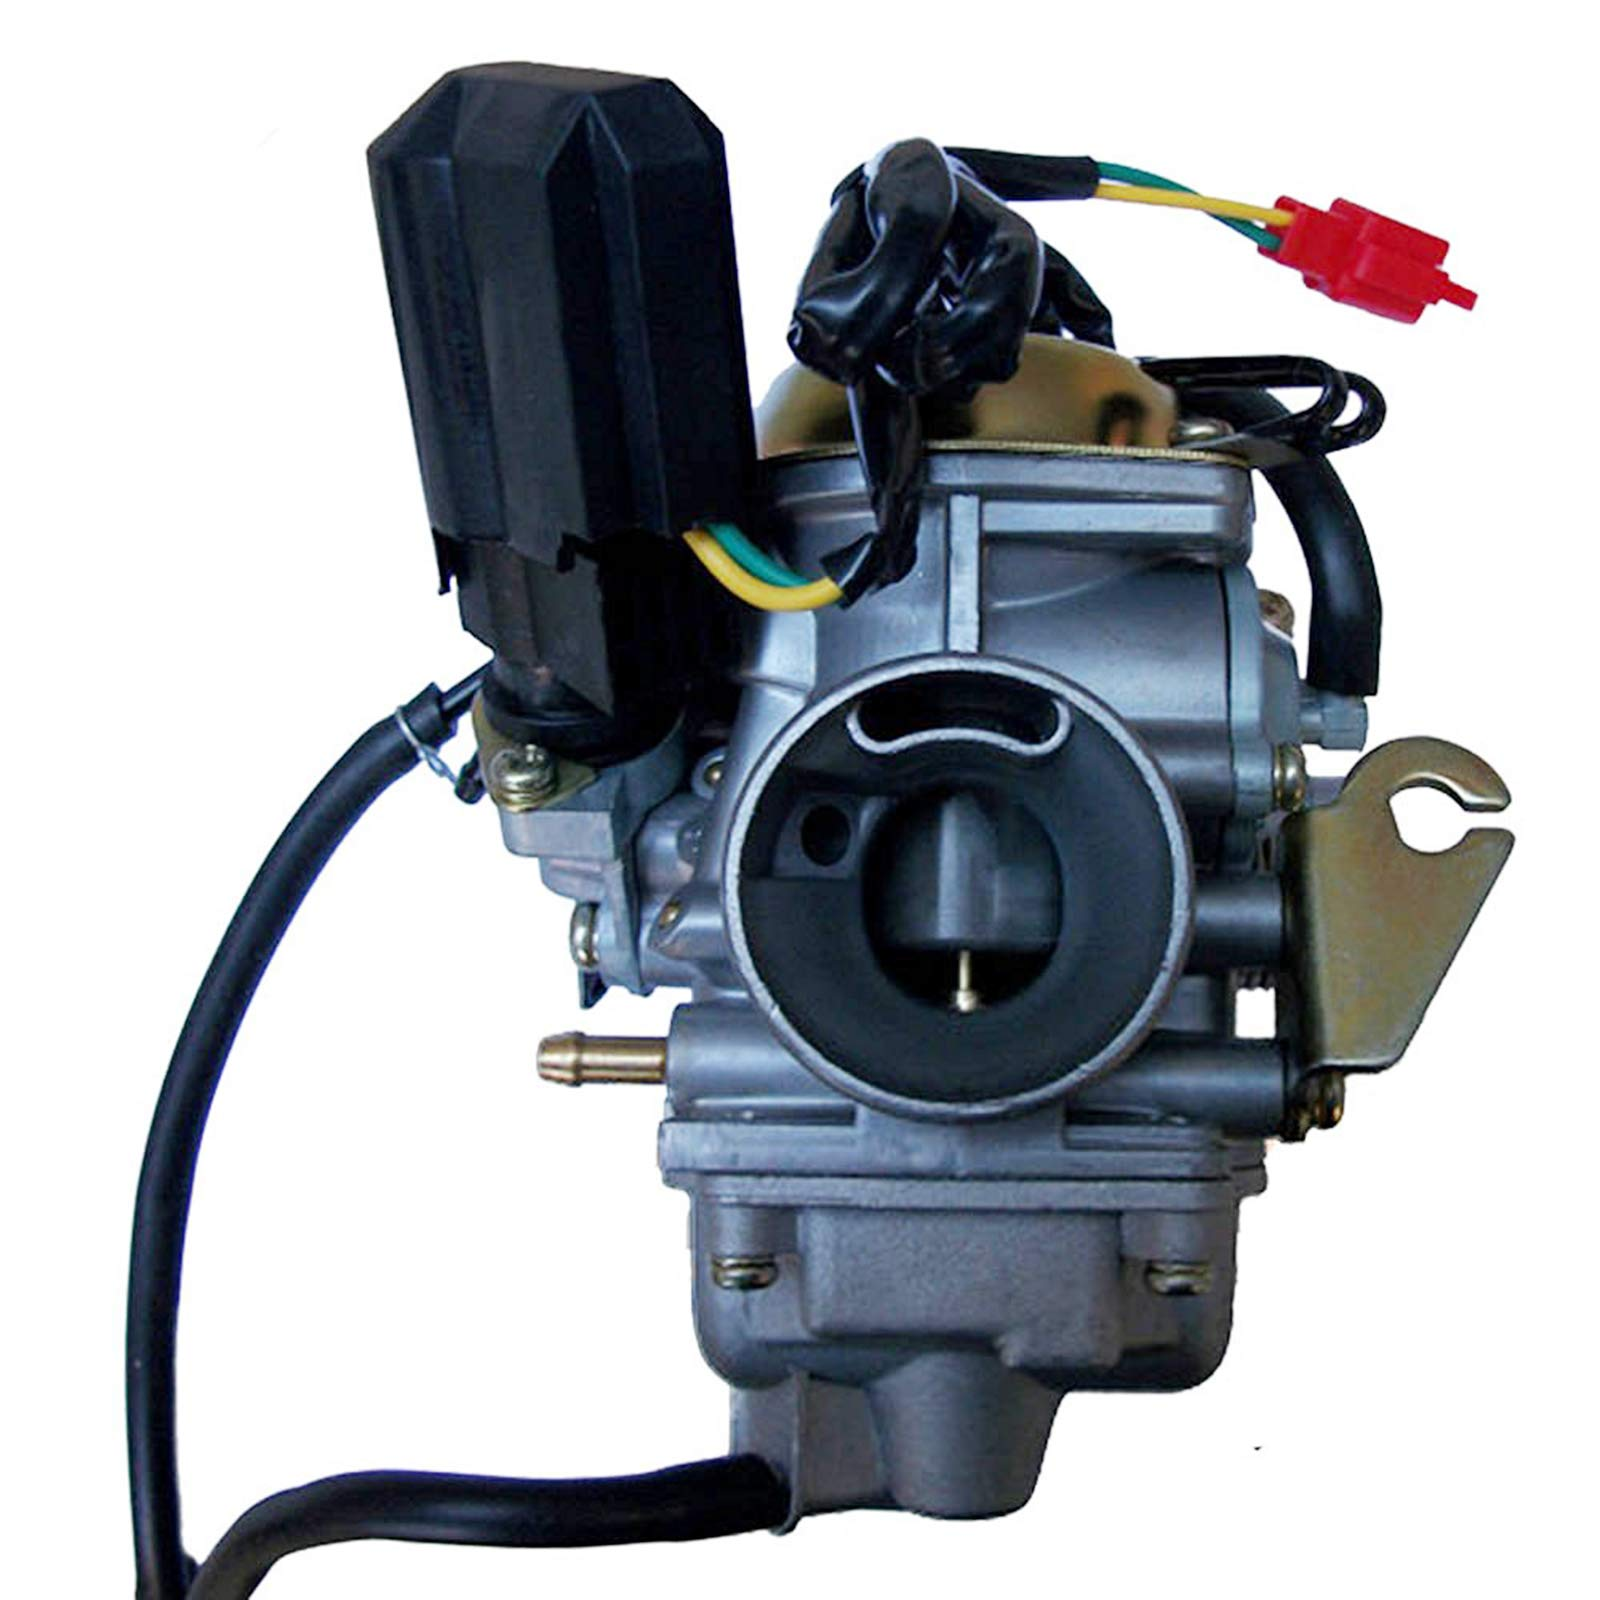 GLENPARTS Carburetor FOR YERF DOG DOGG GY6 150 150cc Scooter Moped Go Kart Carb